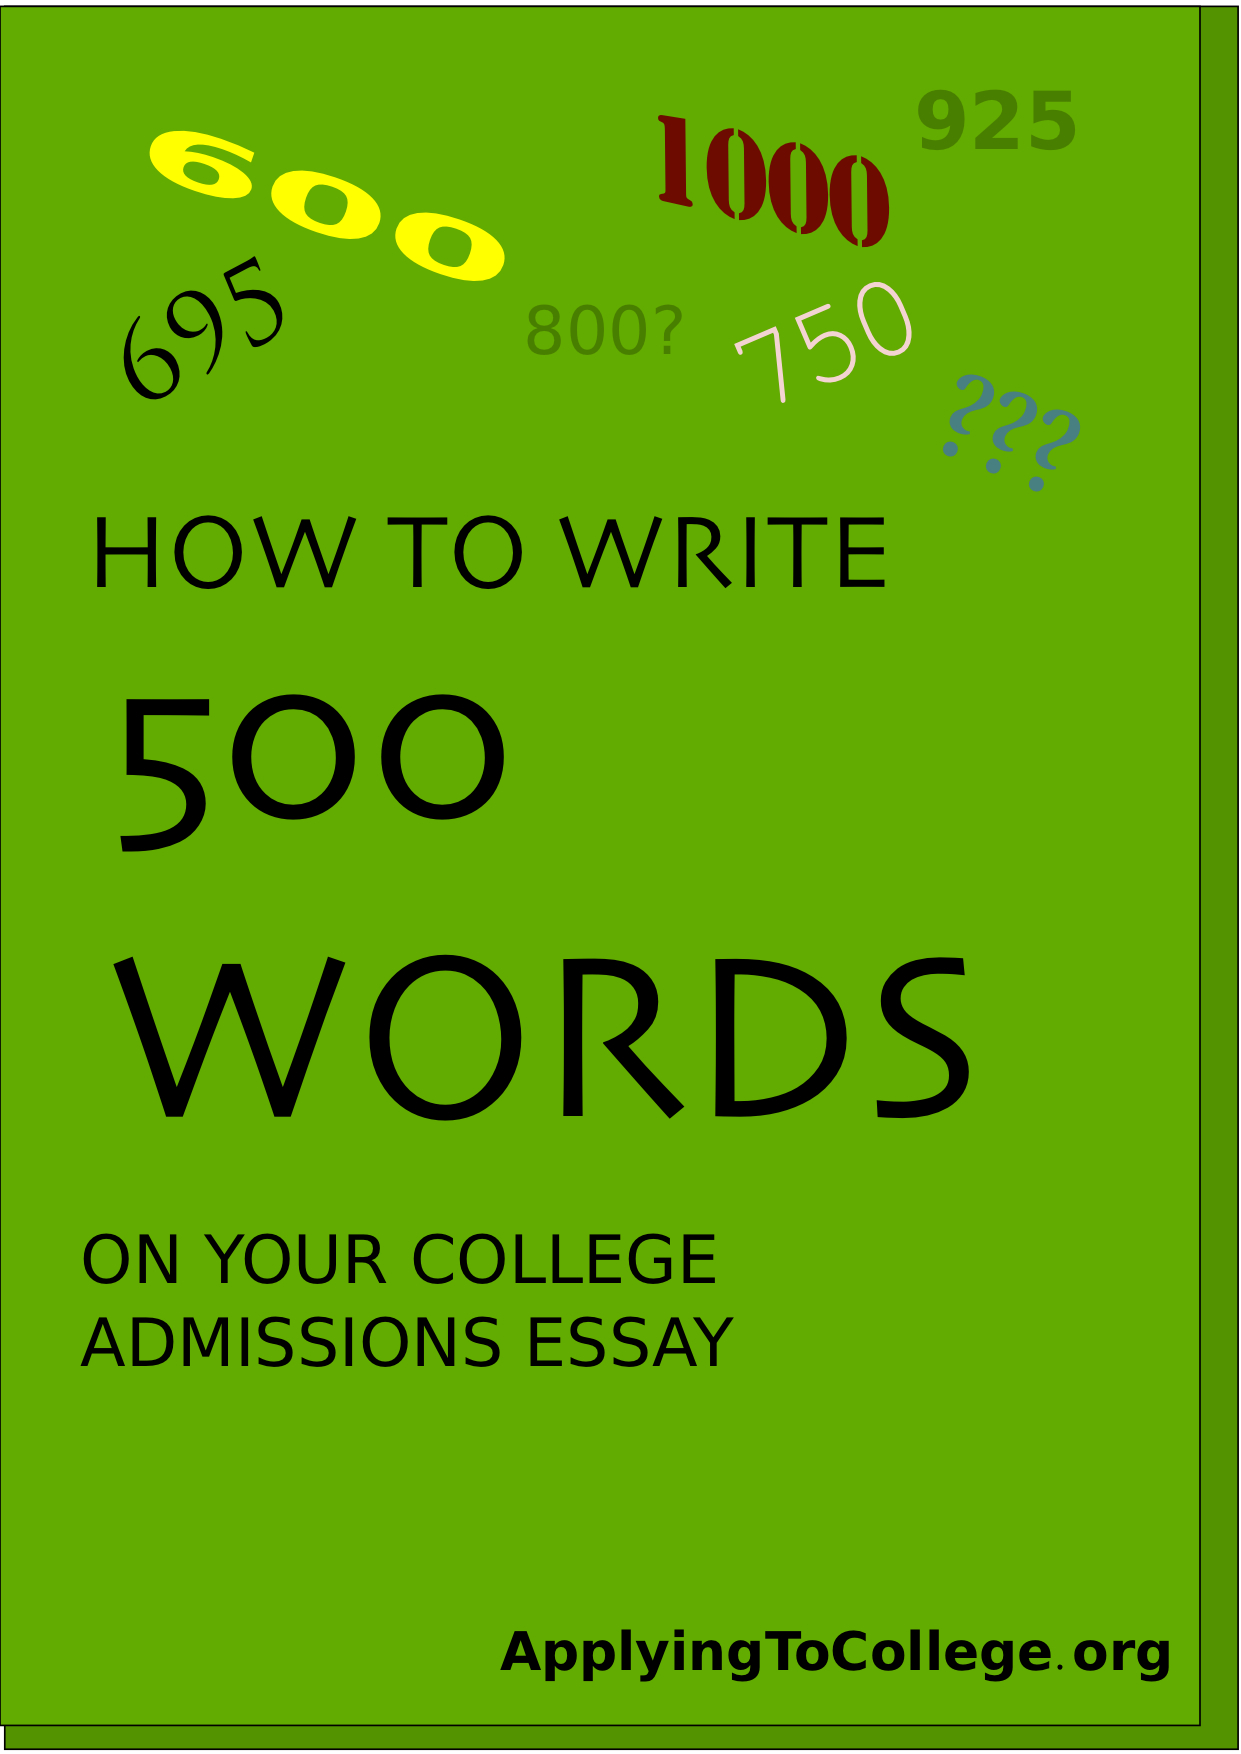 big essay words More time if you spend it on here asking :p more seriously, you should be able to knock it out in a day - maybe less if you're feeling particularly motivated and know roughly what you're going to say i did 2000 words of a 3000 word essay in about 8 hours the other day but everyone is different and the essay.